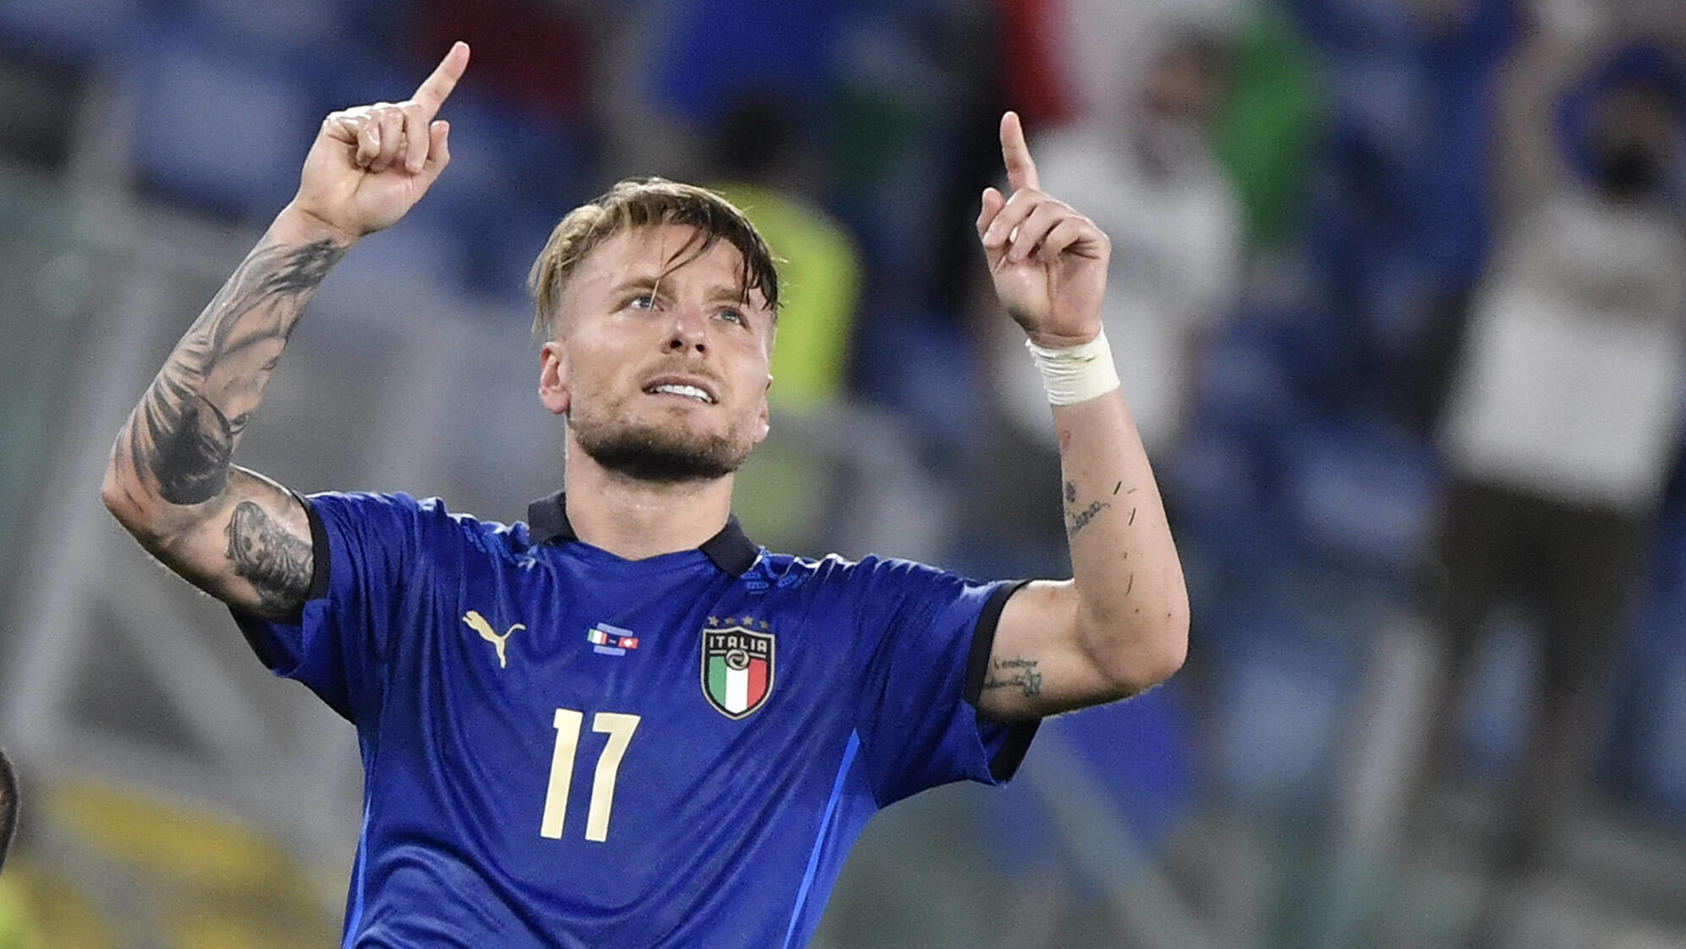 Ciro Immobile of Italy celebrates after scoring the goal of 3-0 during the UEFA EURO, EM, Europameisterschaft,Fussball 2